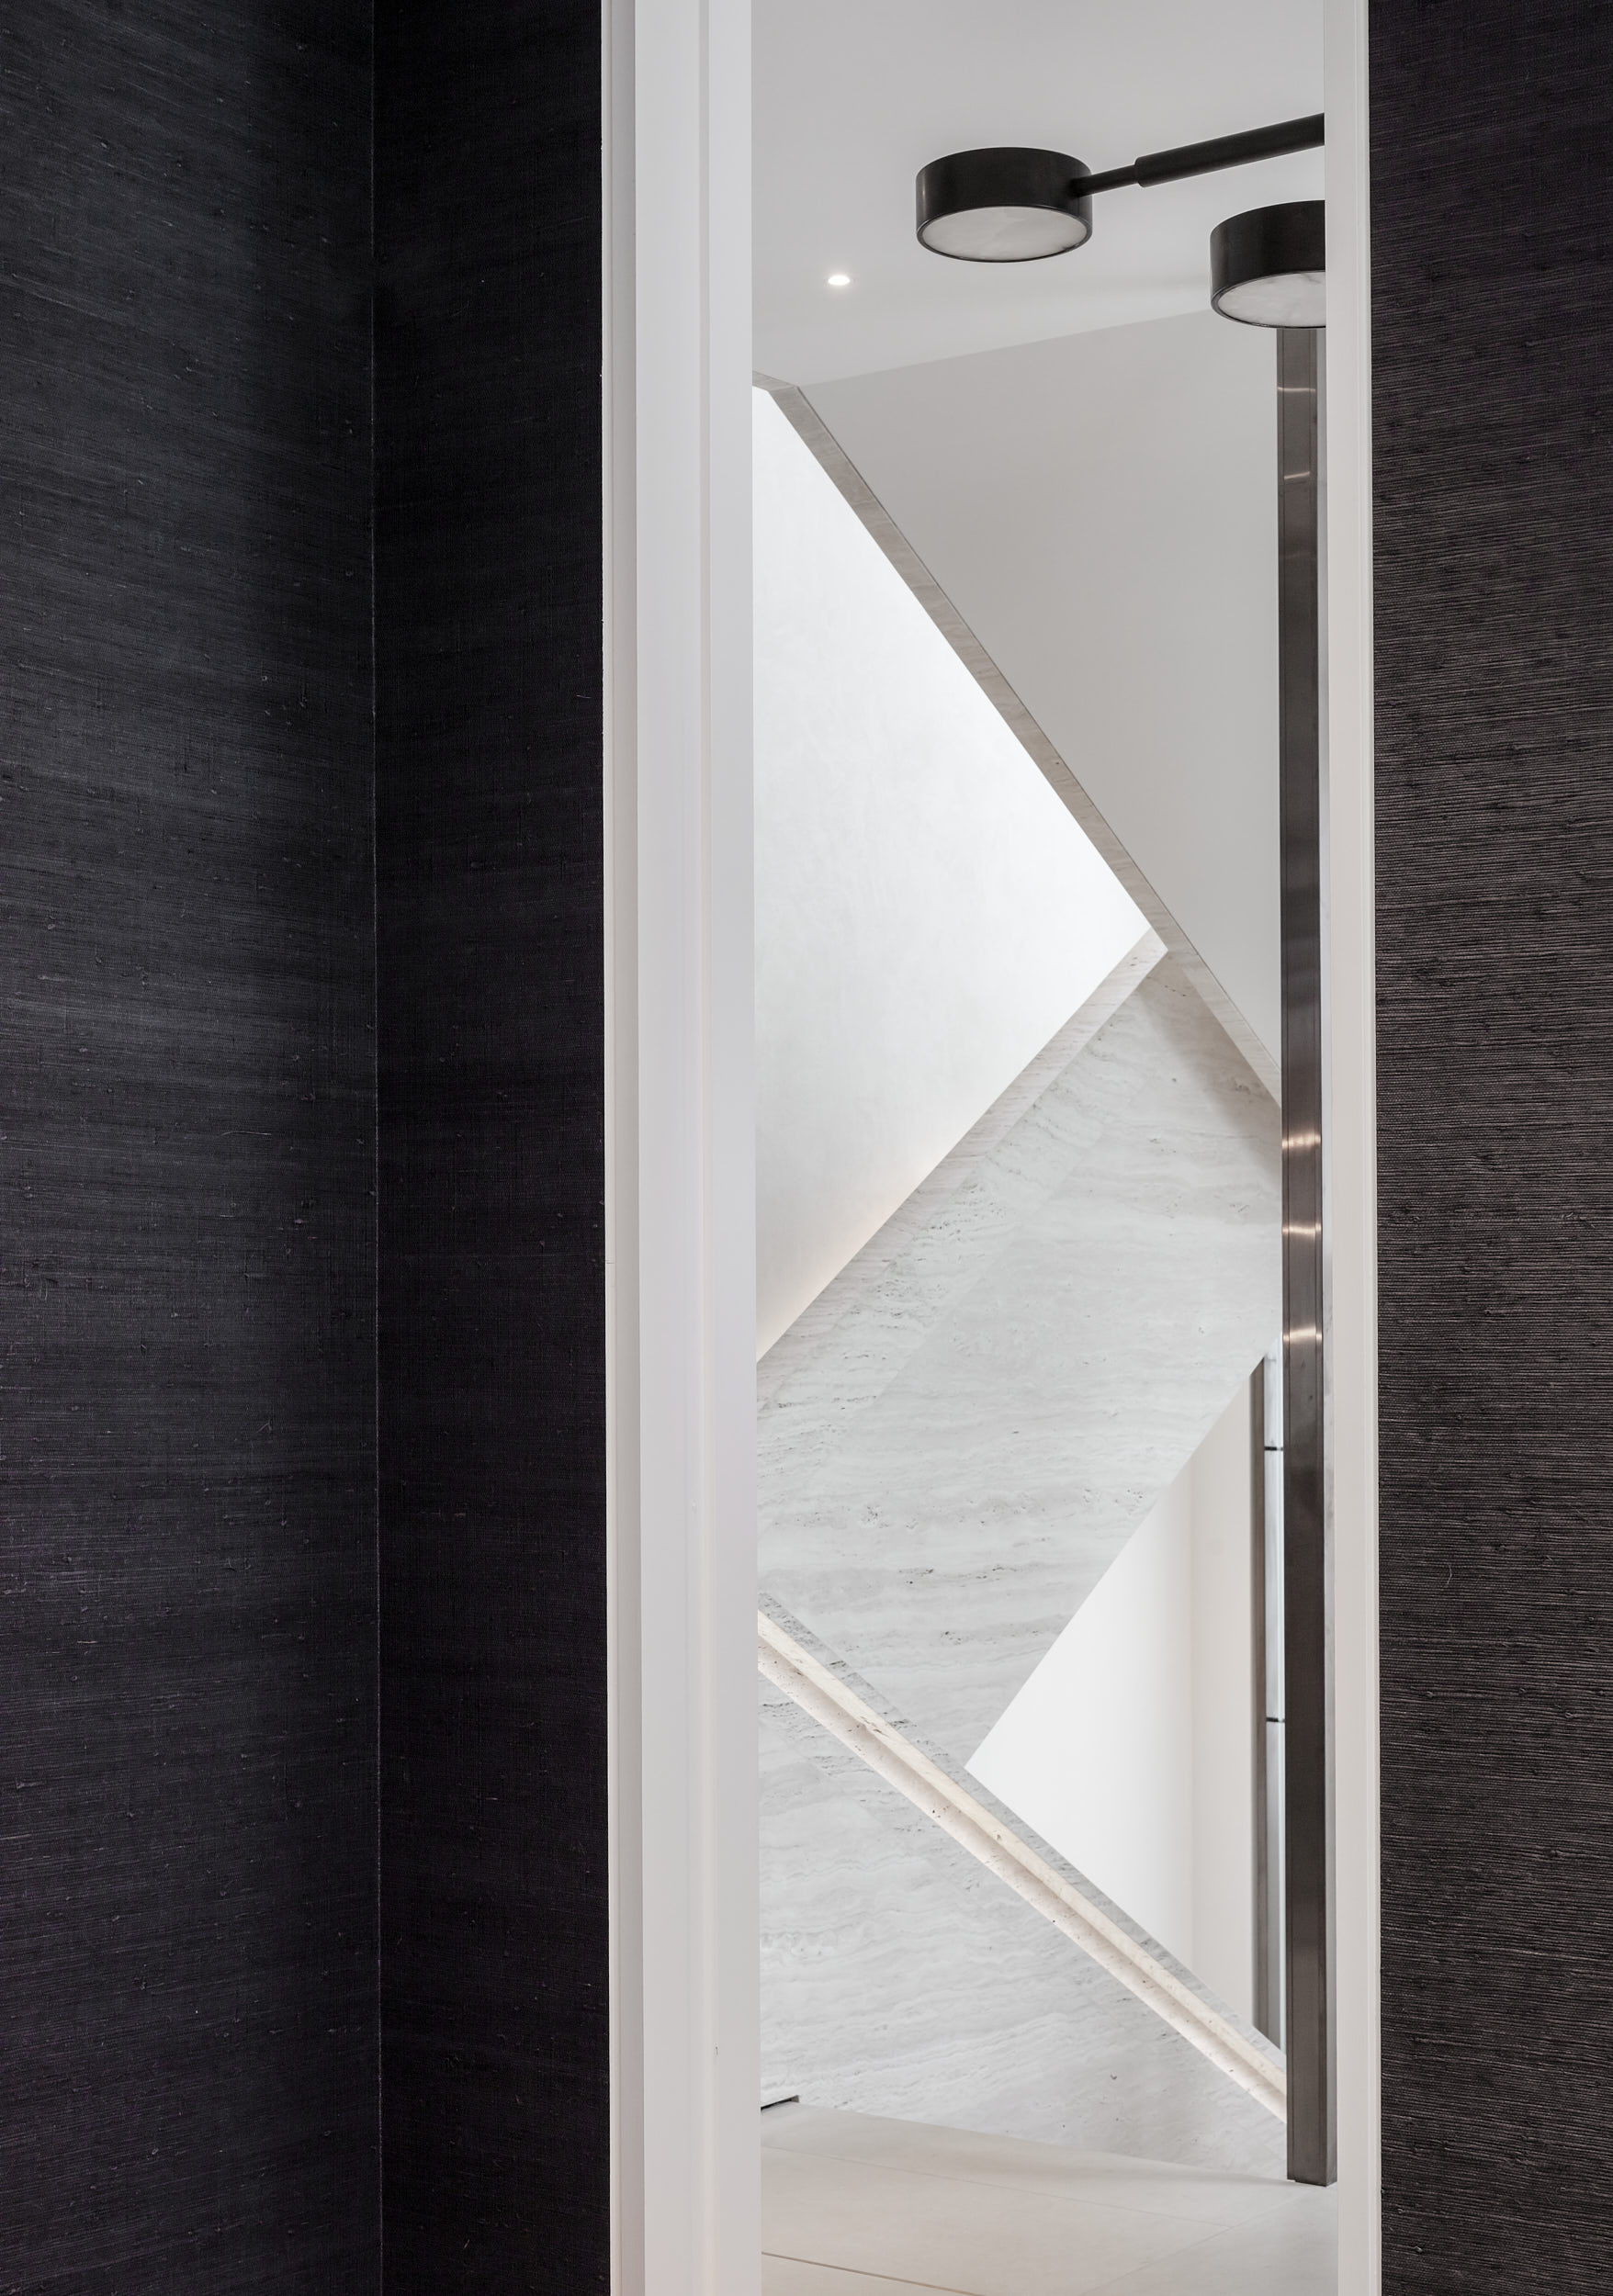 The design features timber panelling and exquisitely detailed marble.